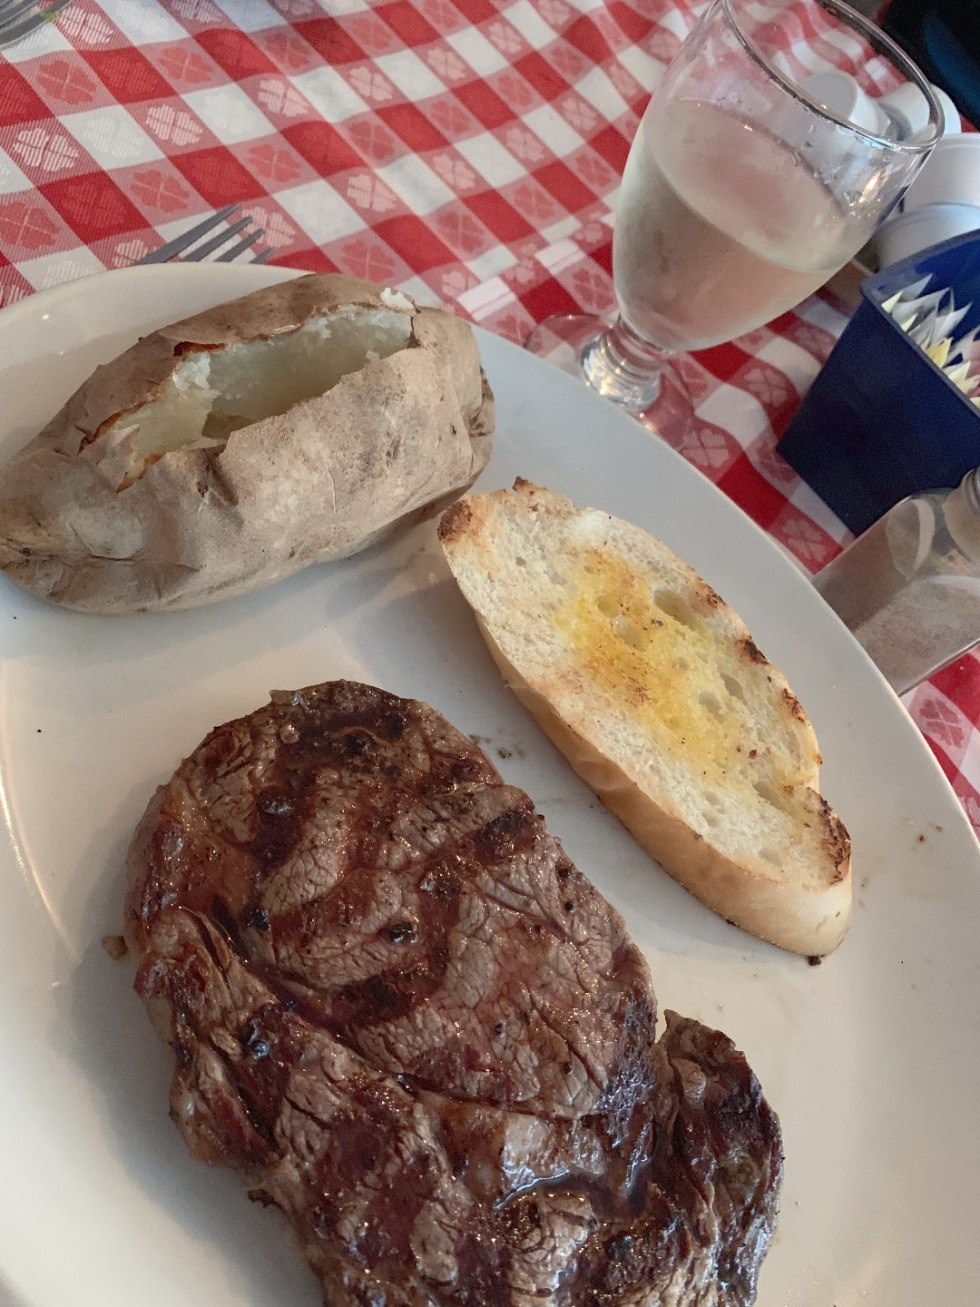 Top 5 Best Destination Restaurants in Eastern NC you Need to Try by popular North Carolina blog, I'm Fixin' To: image of steak, baked potato and bread at the Beefmastor Inn.